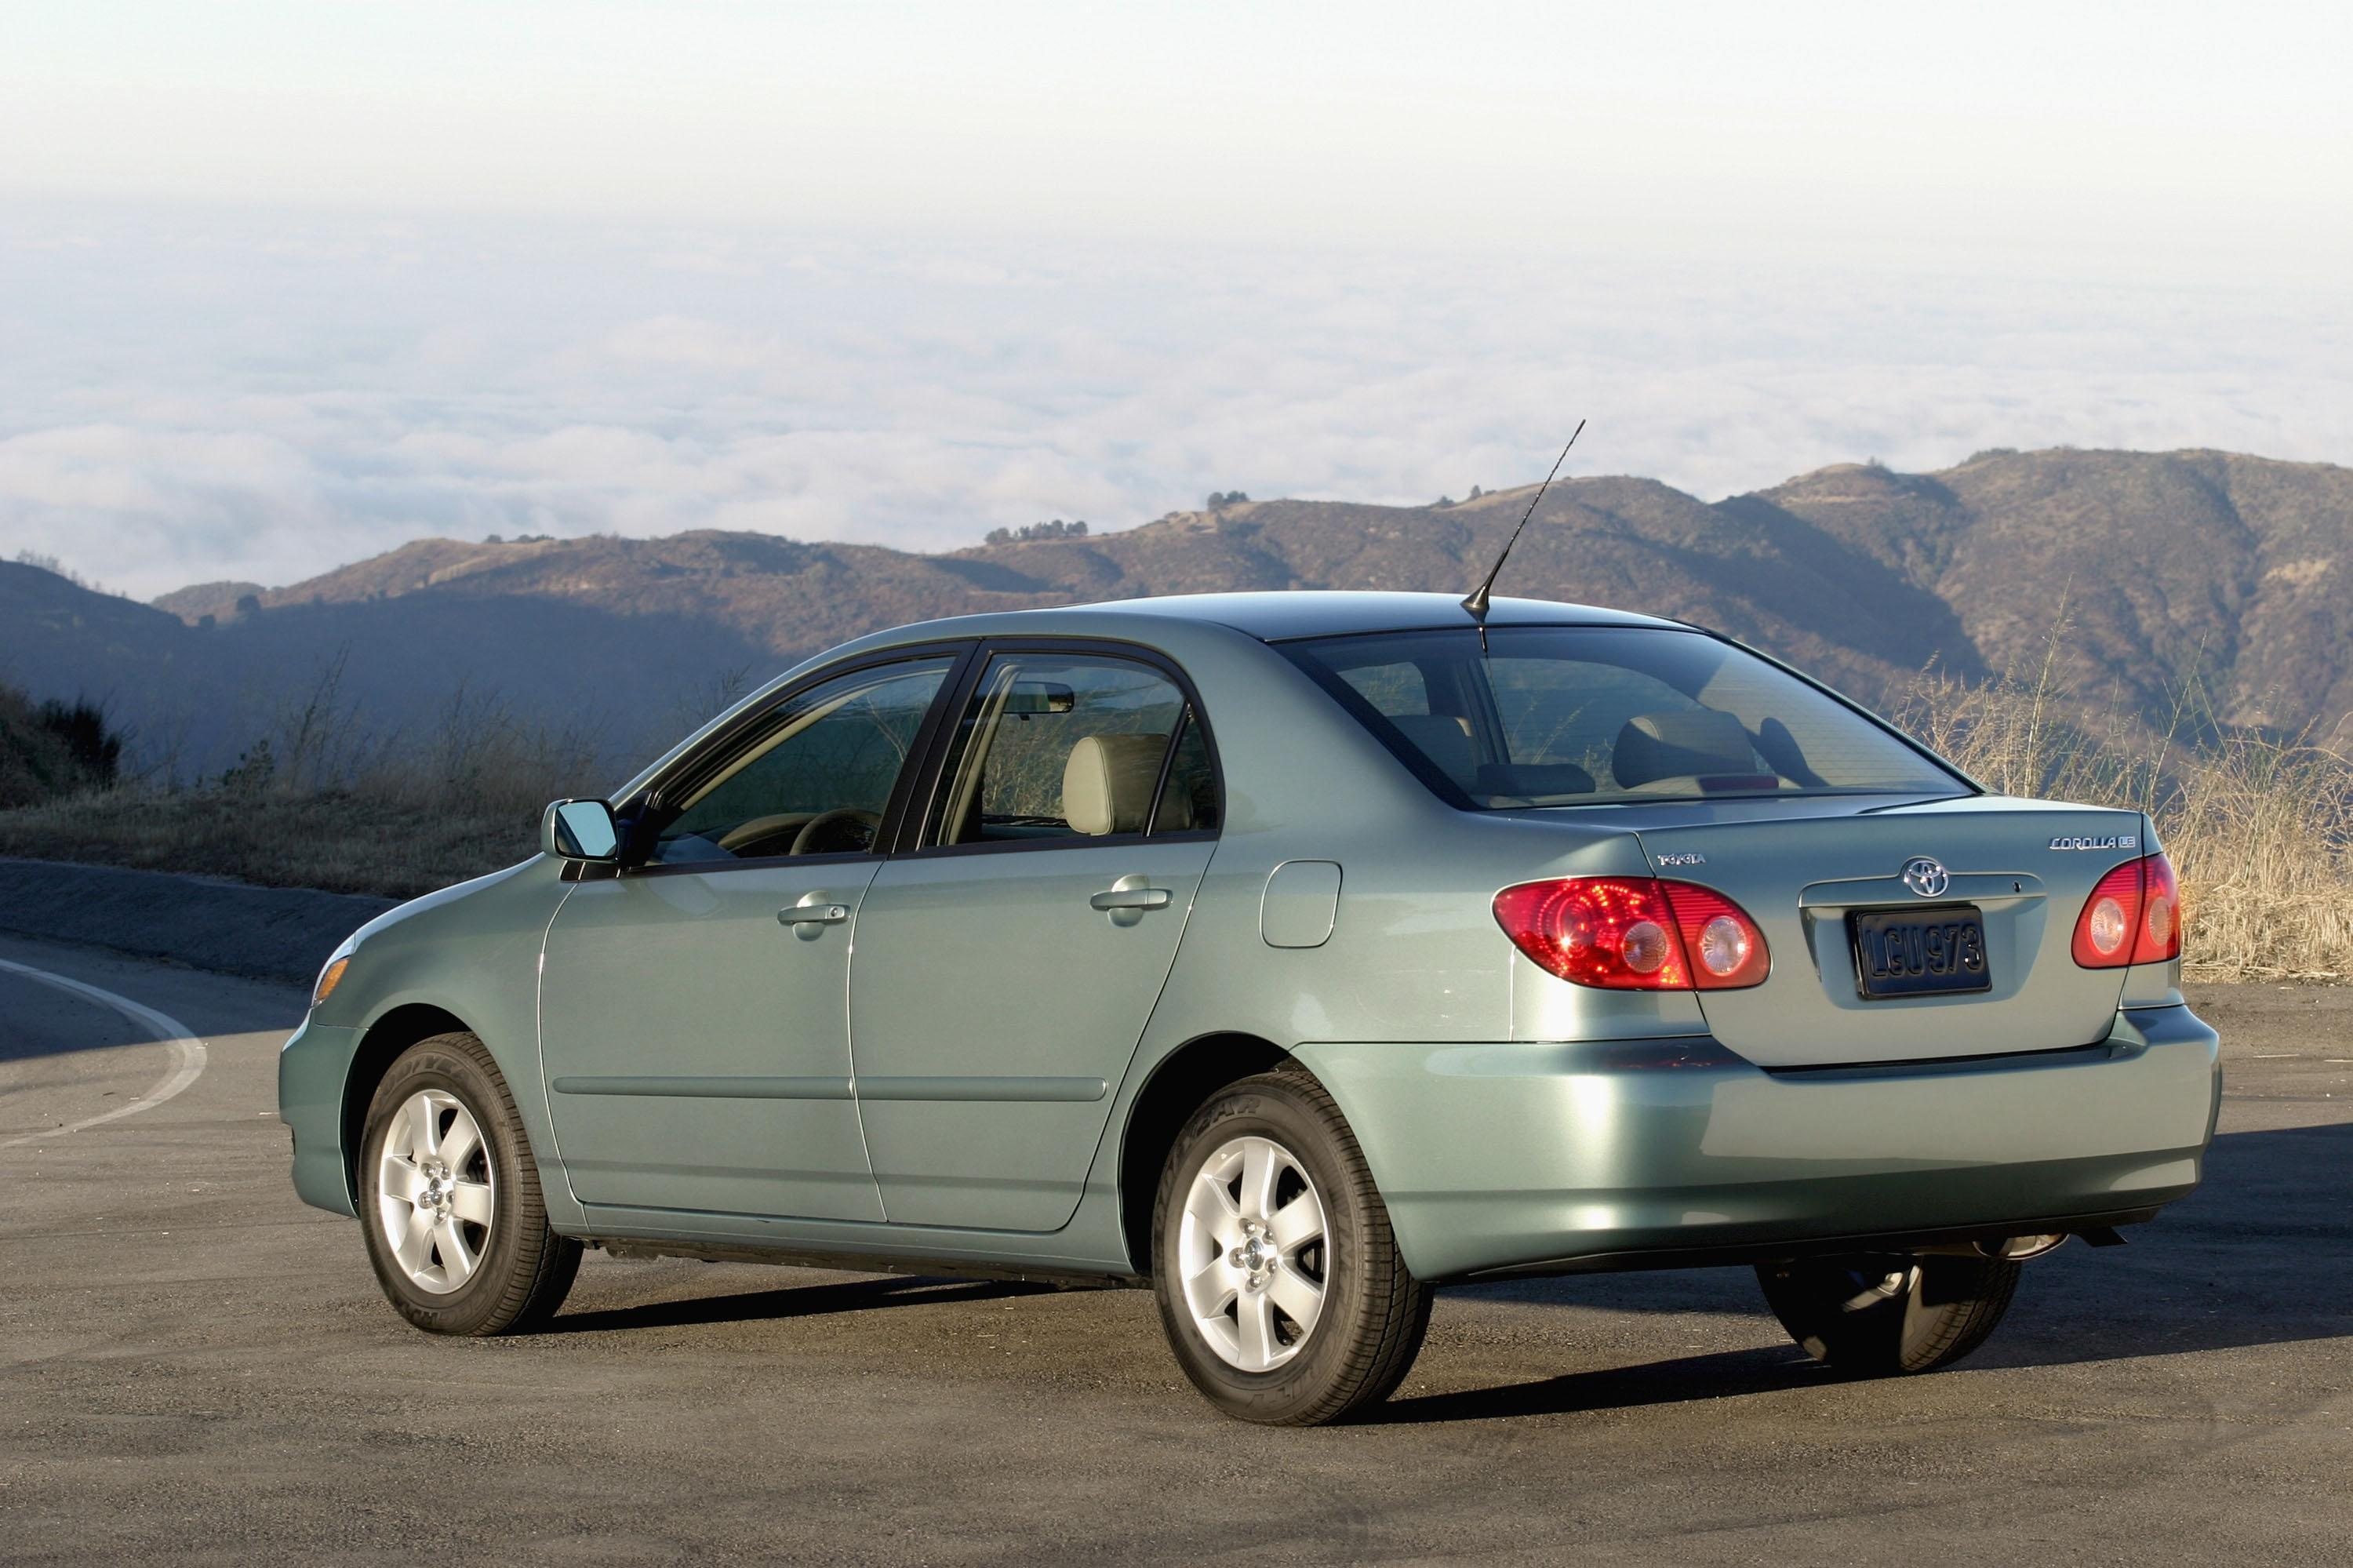 2007 Toyota Corolla Top Speed Fuel Filter Location